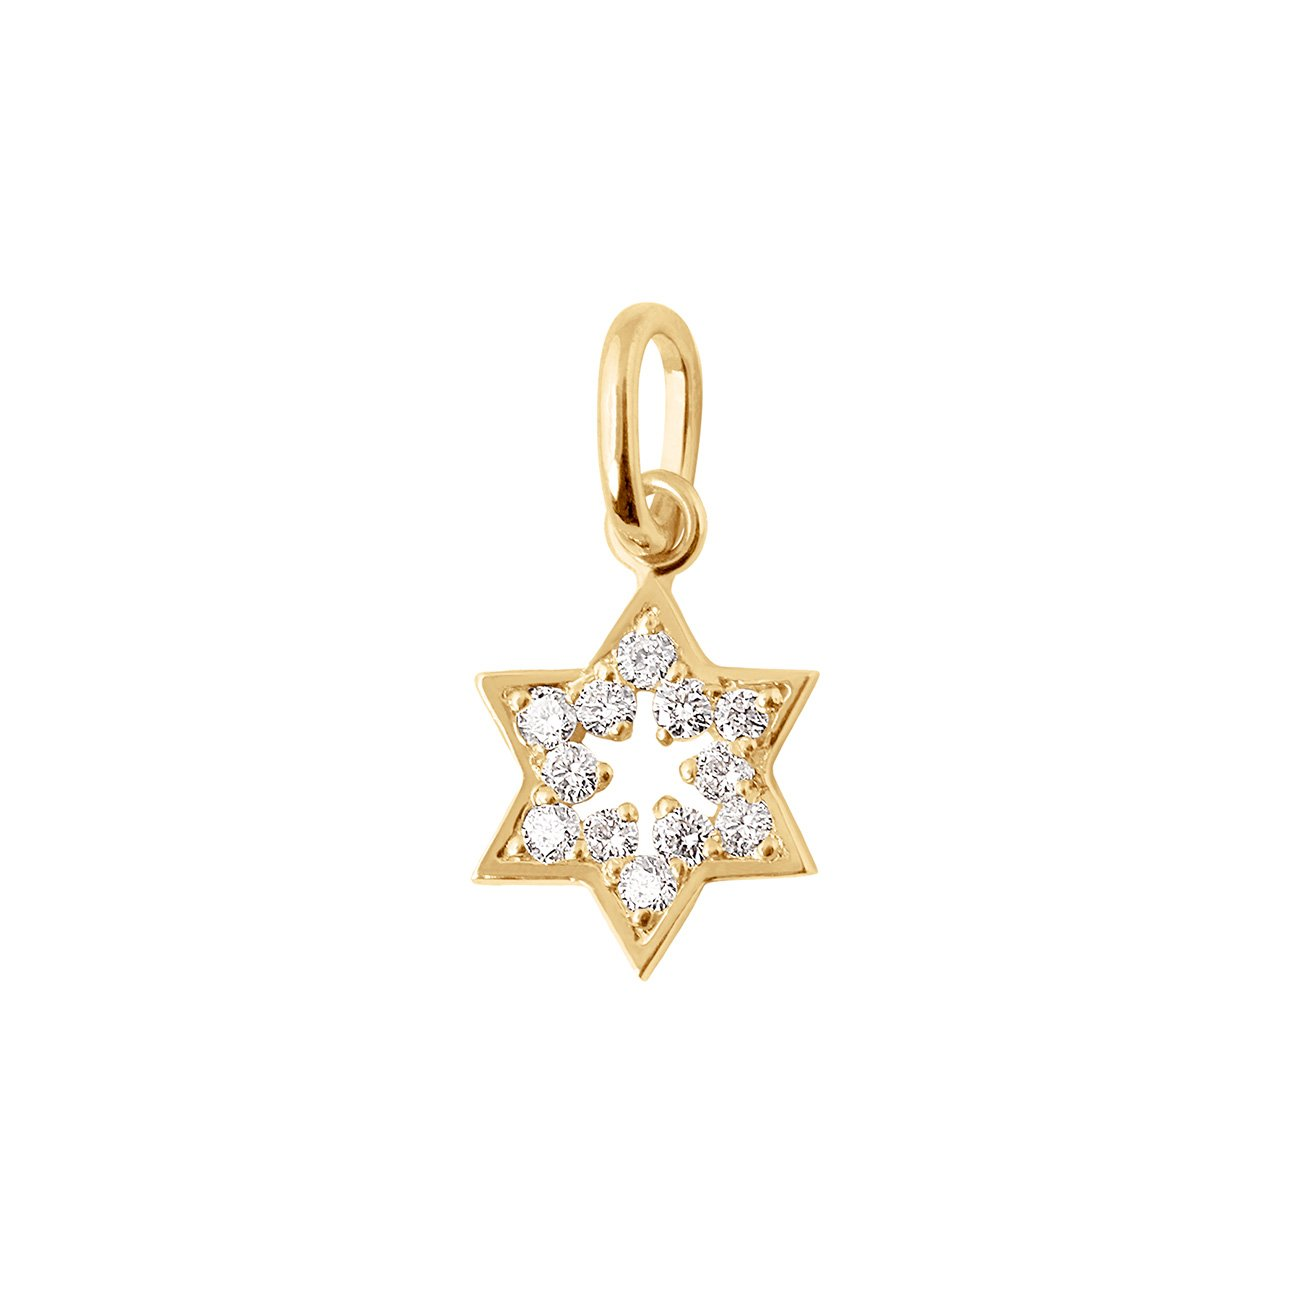 Gigi Clozeau - Pendentif Etoile de David, diamants, or jaune